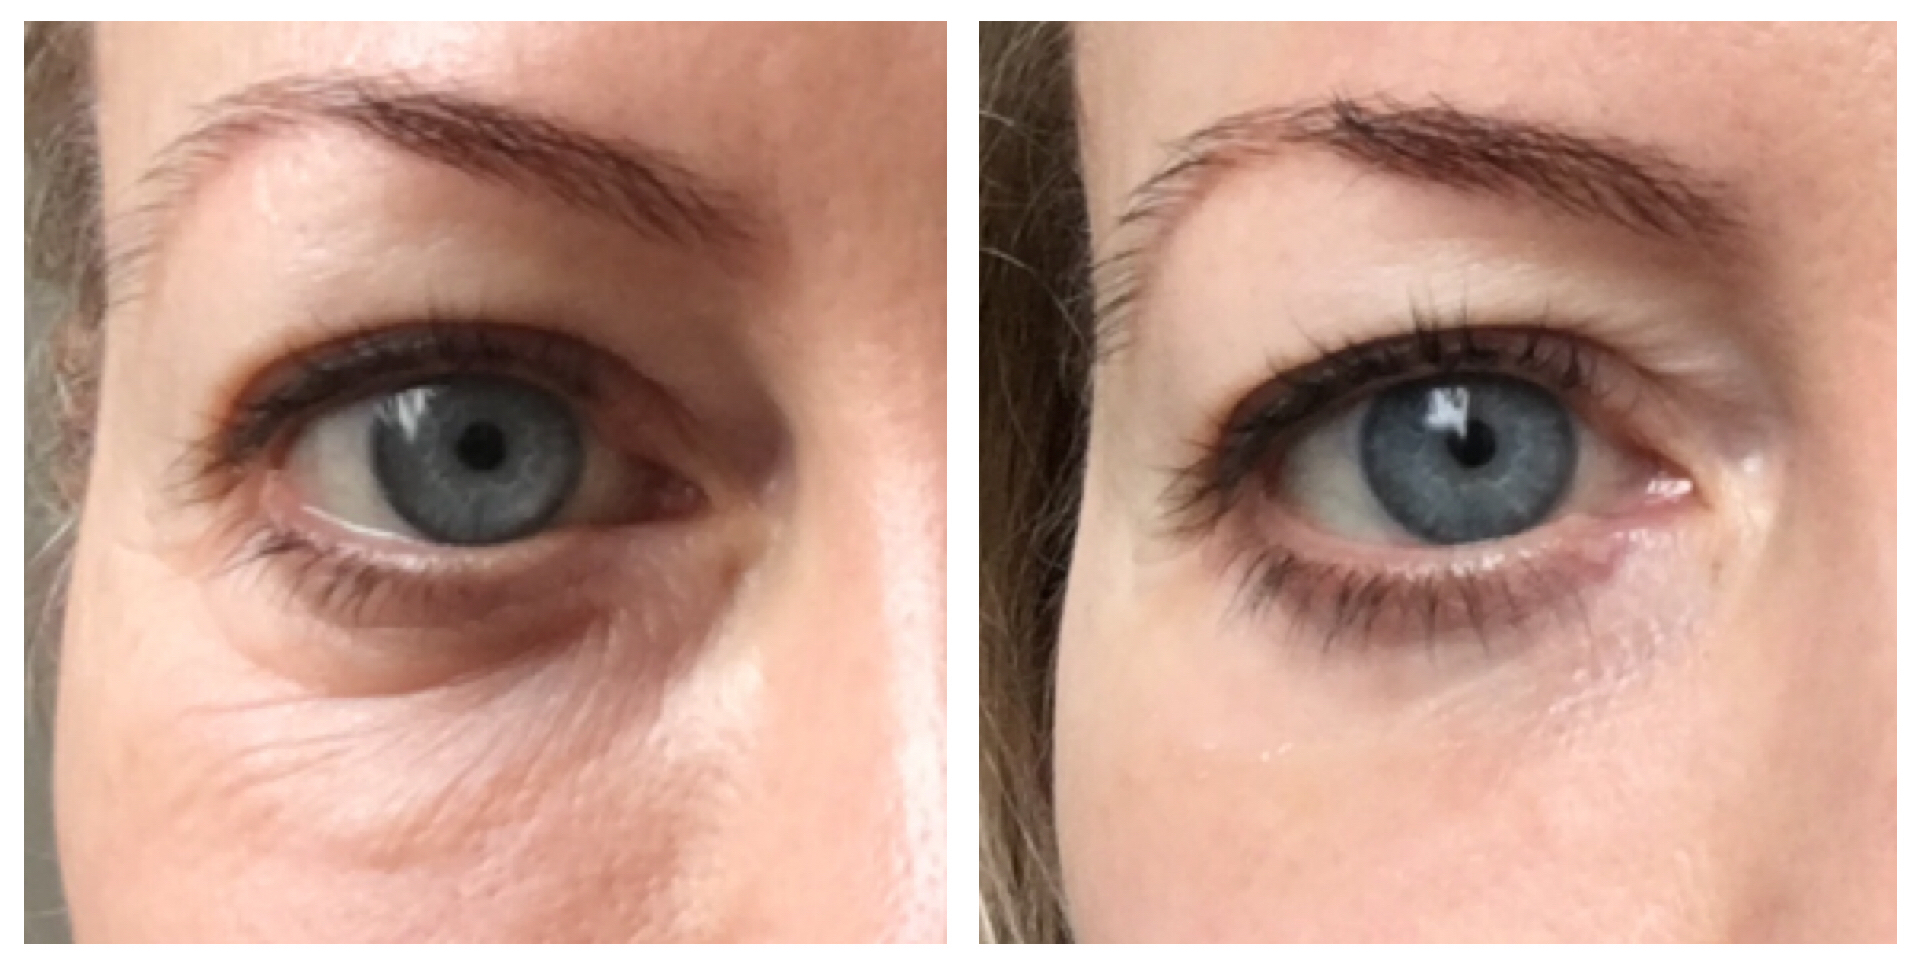 Now you see it, now you don't: my right eye before (left) and after using My Perfect Eyes serum